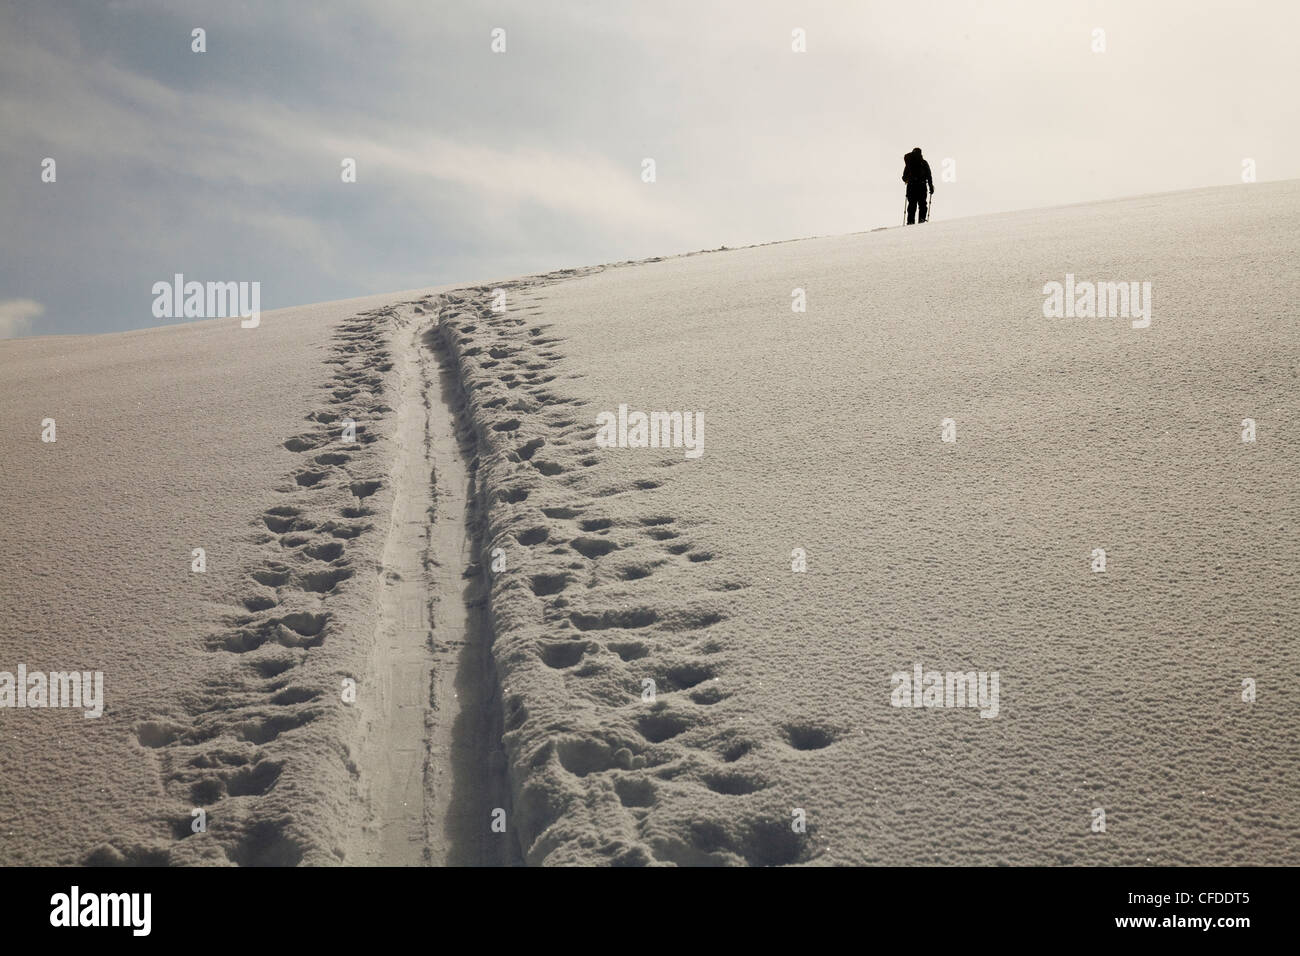 A silhouette of a female backcountry skier skinning along a track in the snow. - Stock Image